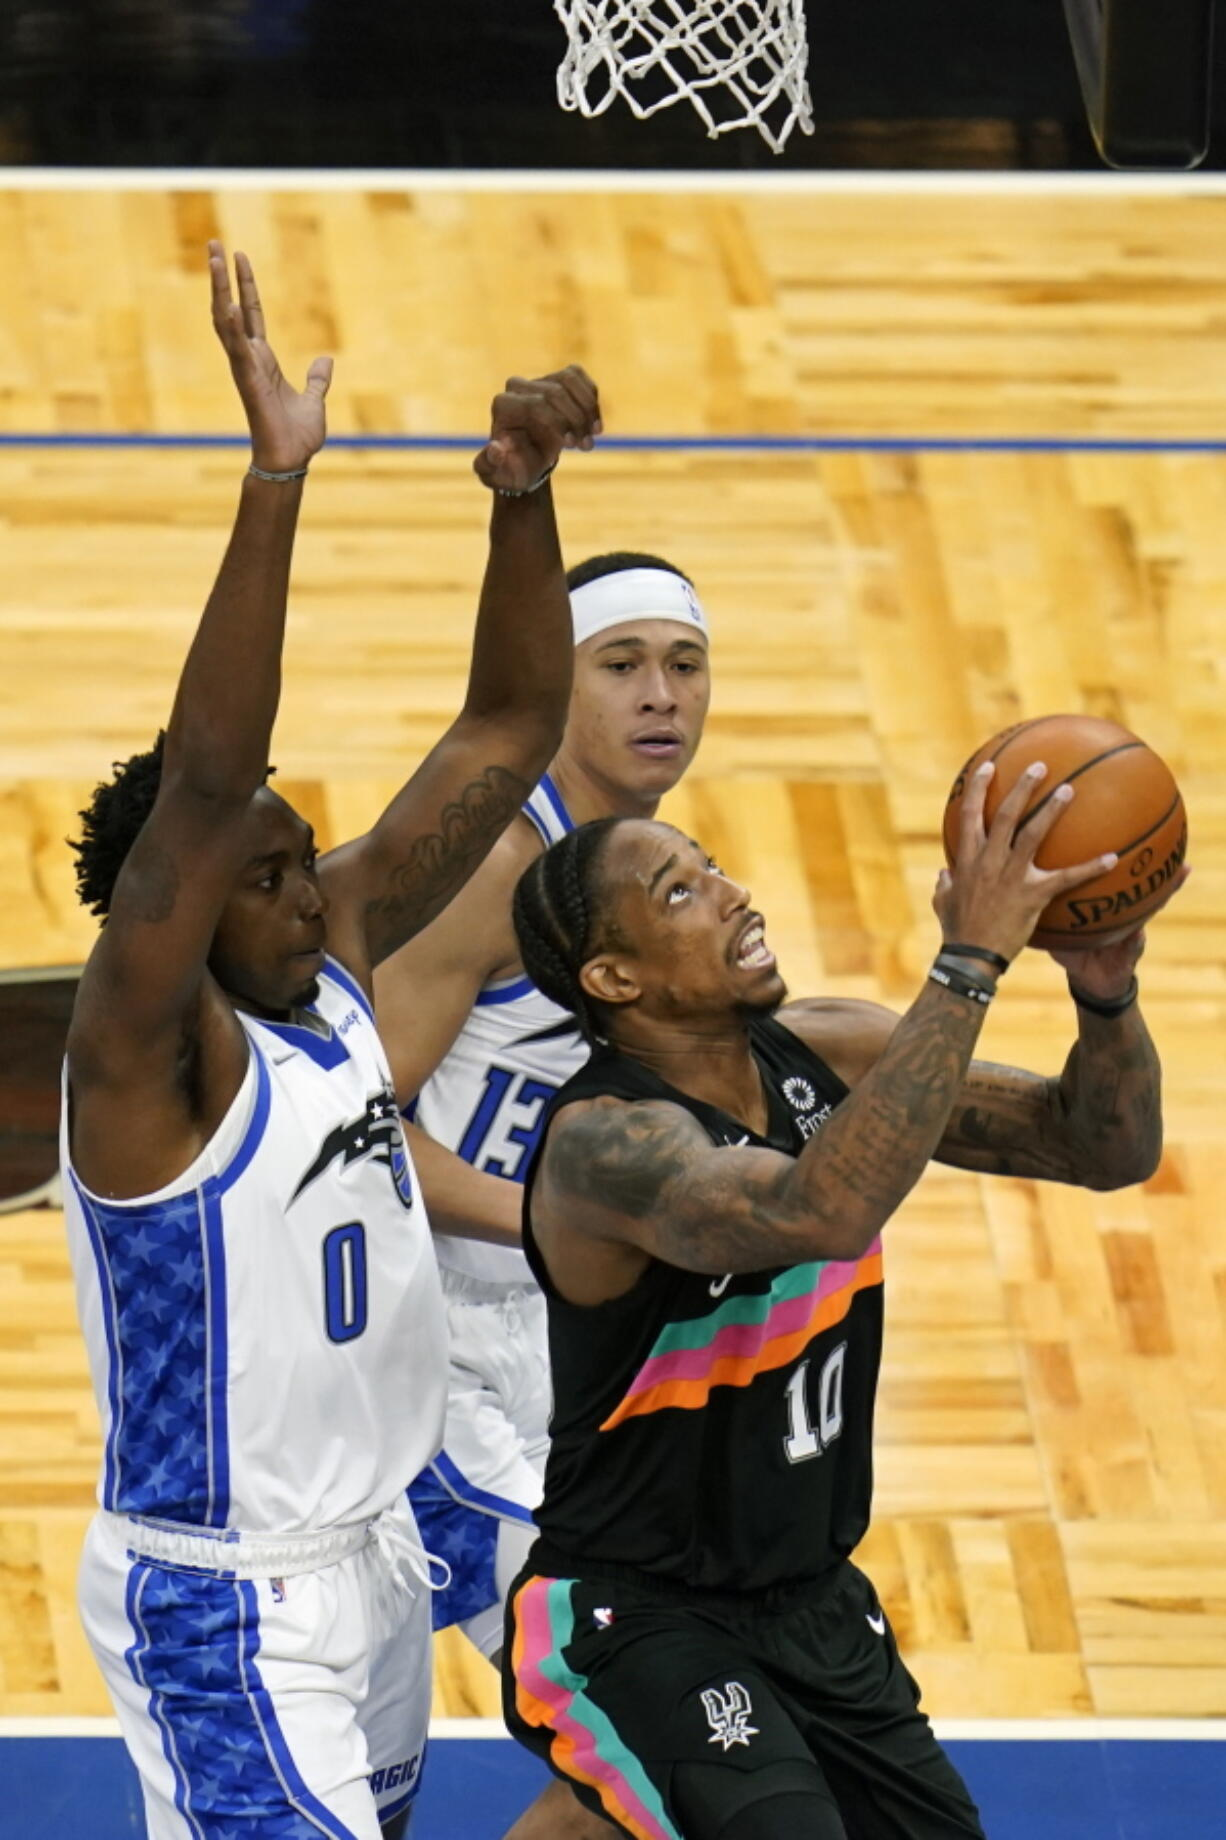 San Antonio Spurs forward DeMar DeRozan, right, looks for a shot against Orlando Magic's Robert Franks (0) and guard R.J. Hampton, back center, during the second half of an NBA basketball game, Monday, April 12, 2021, in Orlando, Fla.